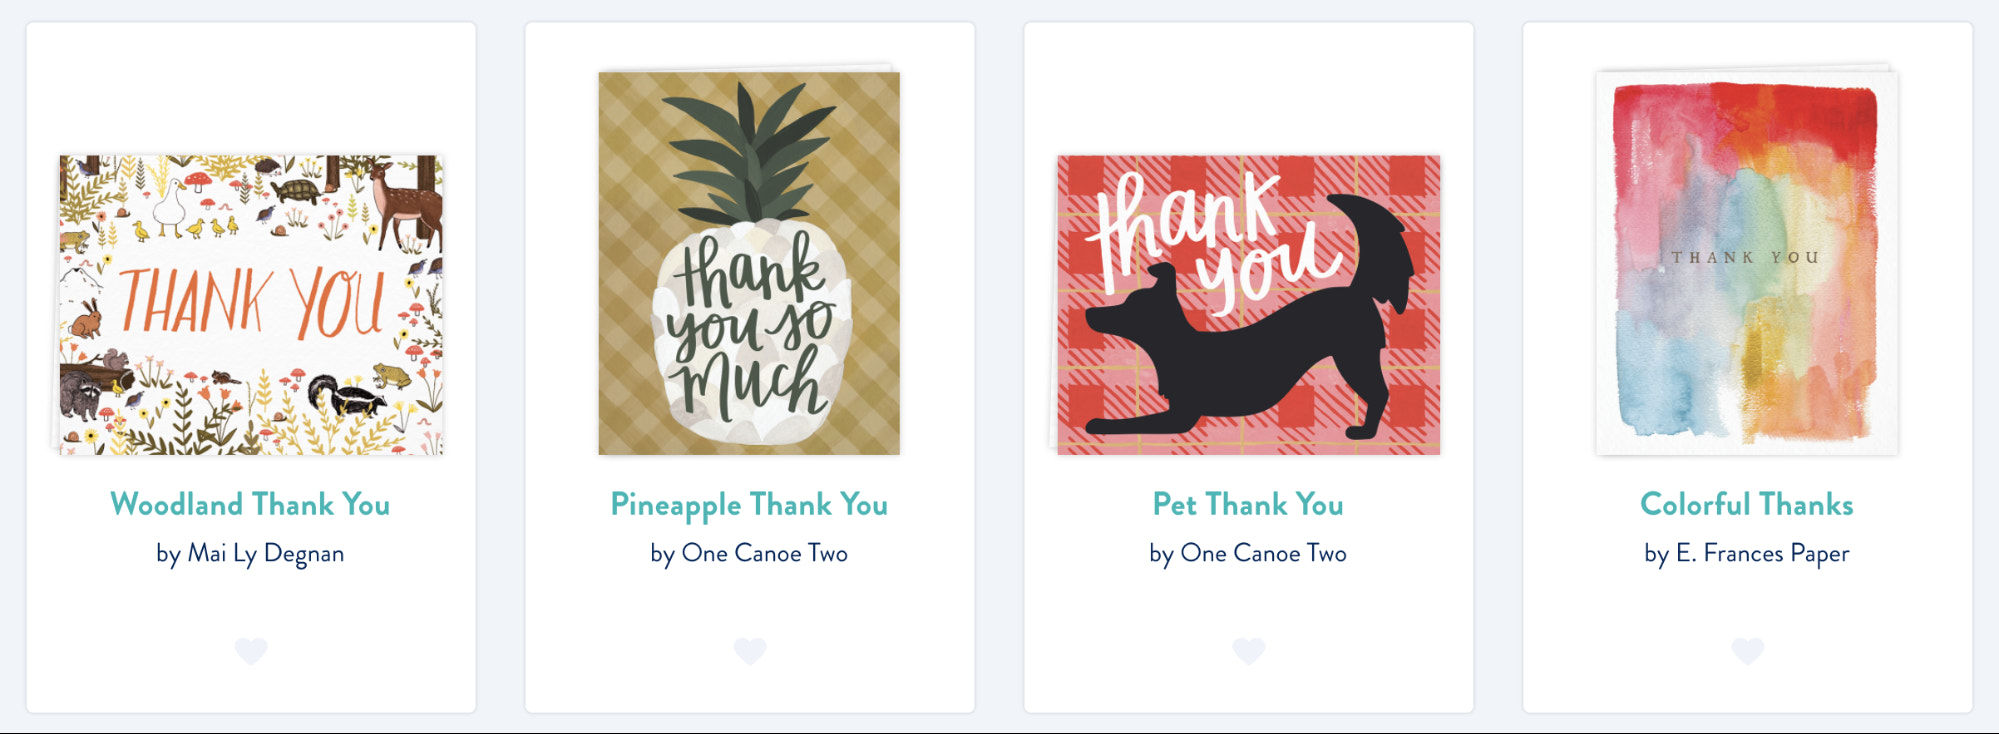 postcard examples for customers